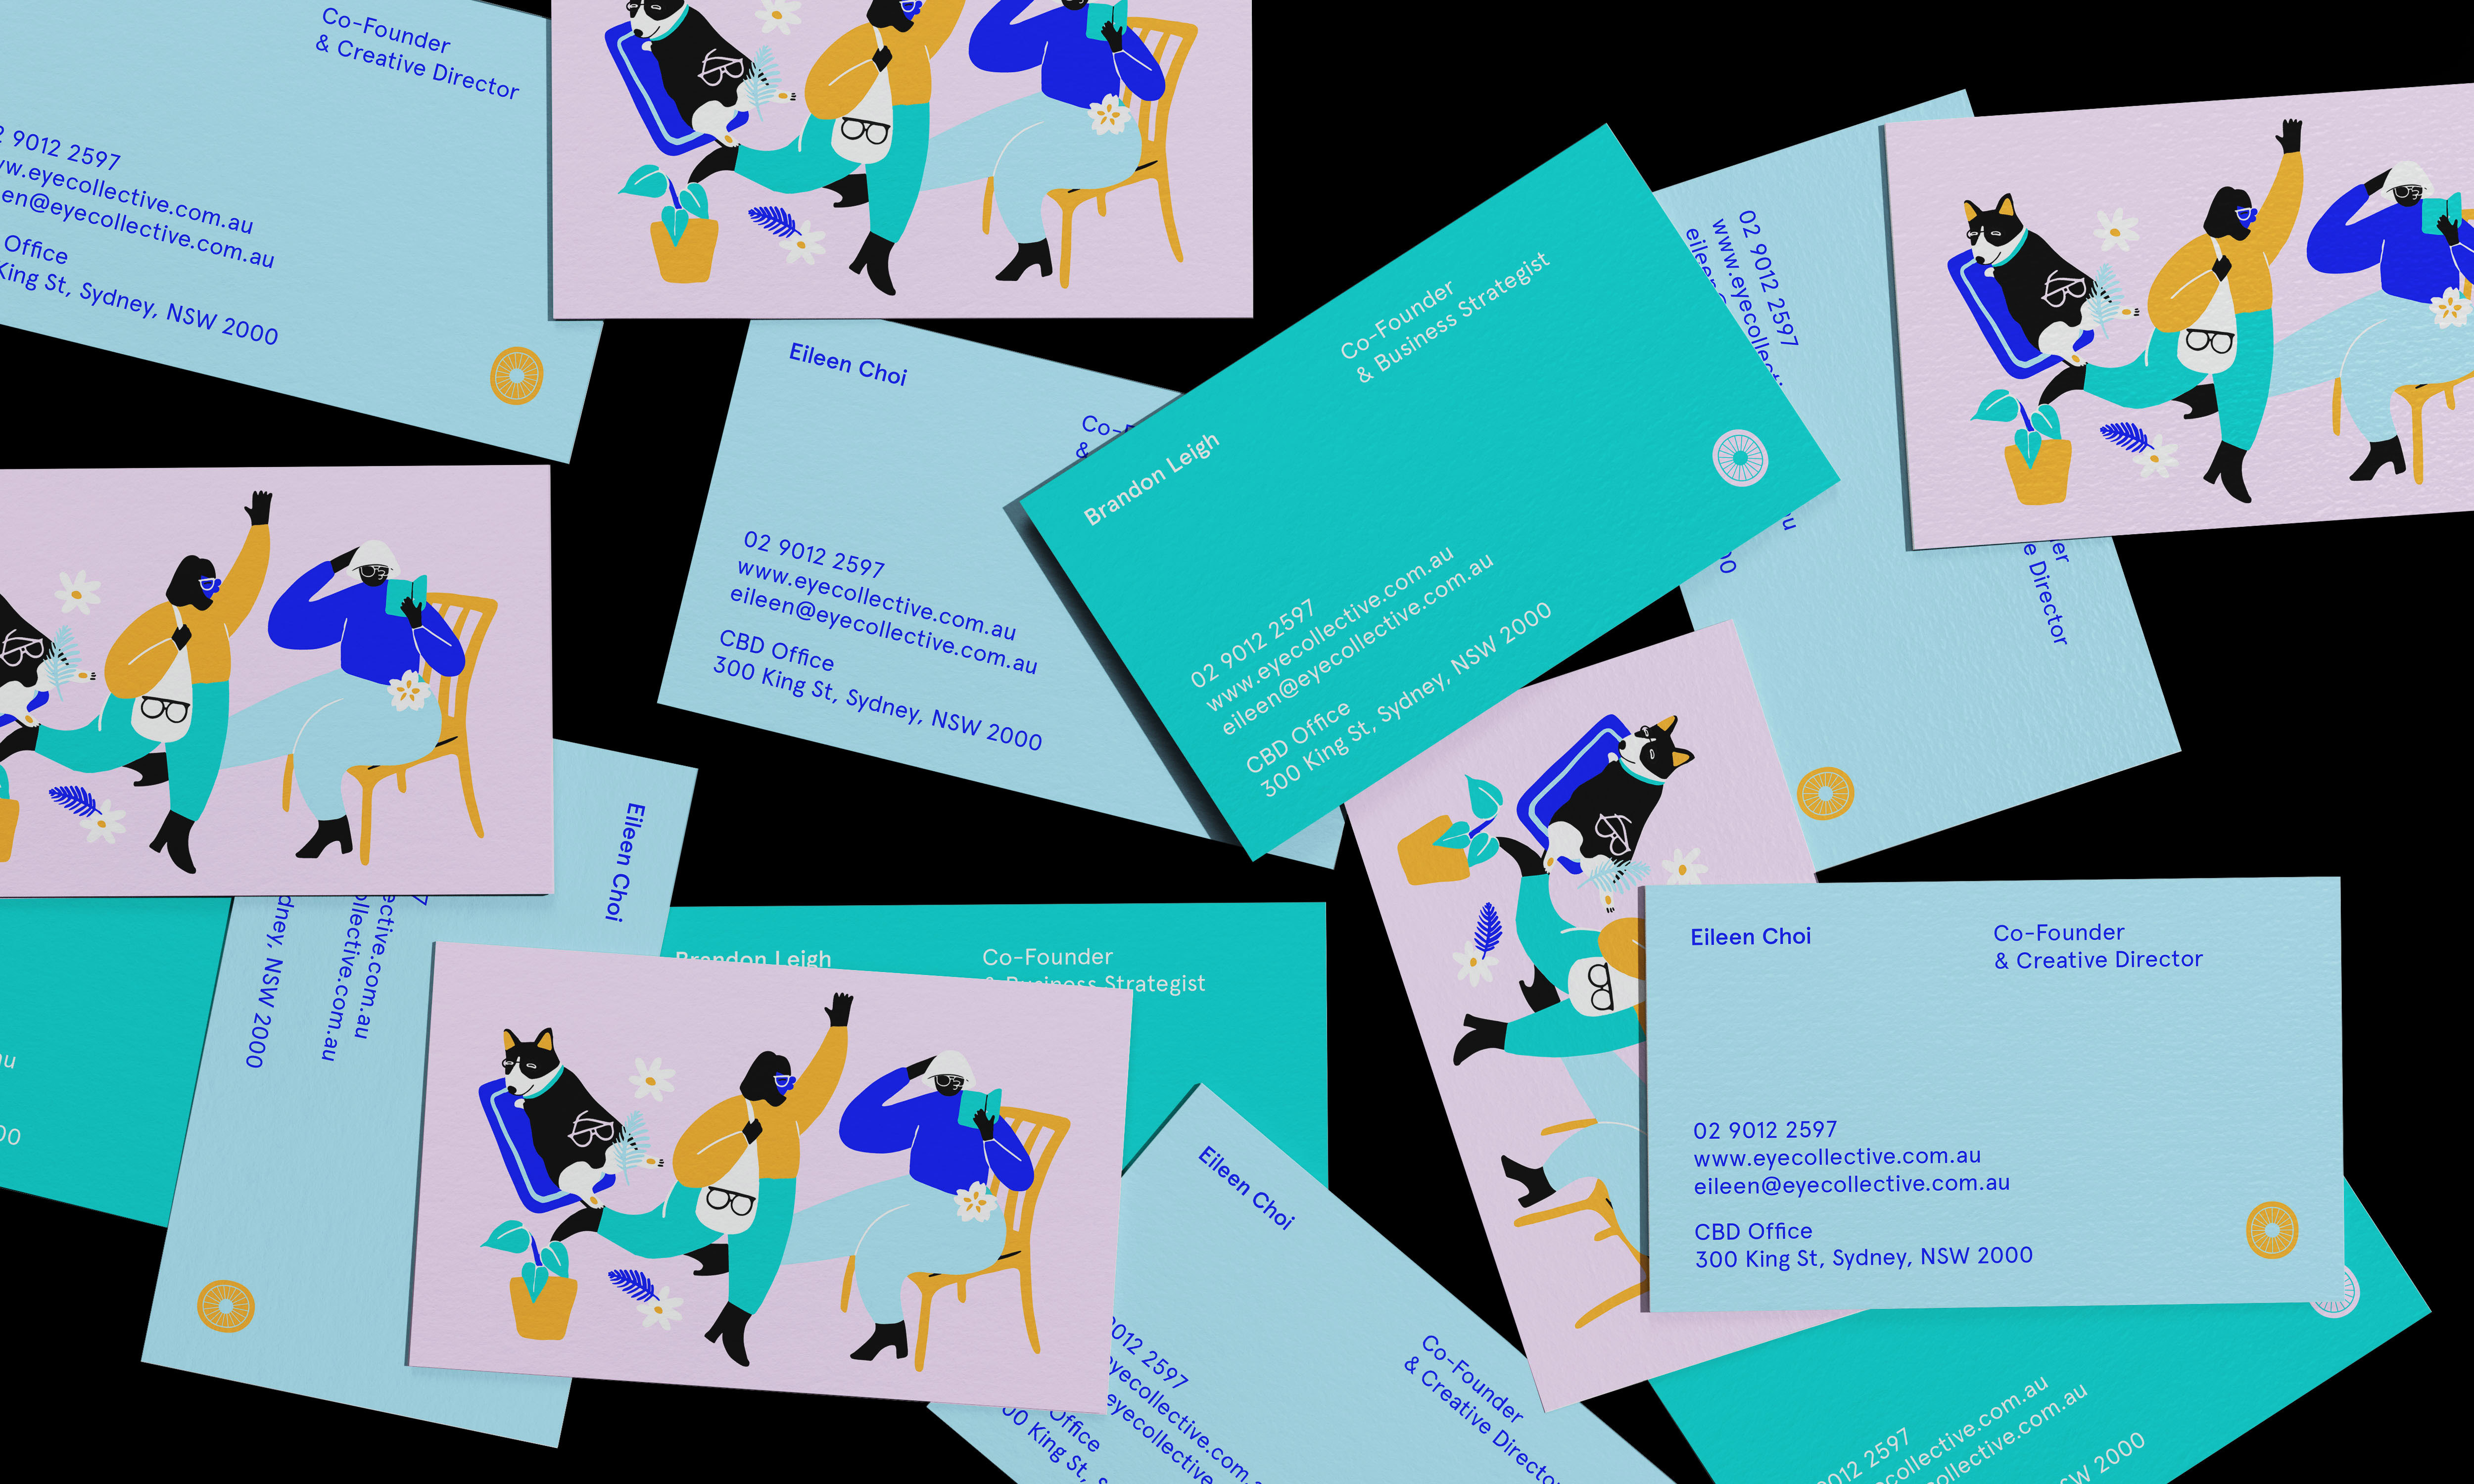 Ticky Lan Creates Concept Branding and Illustration for Eye Collective